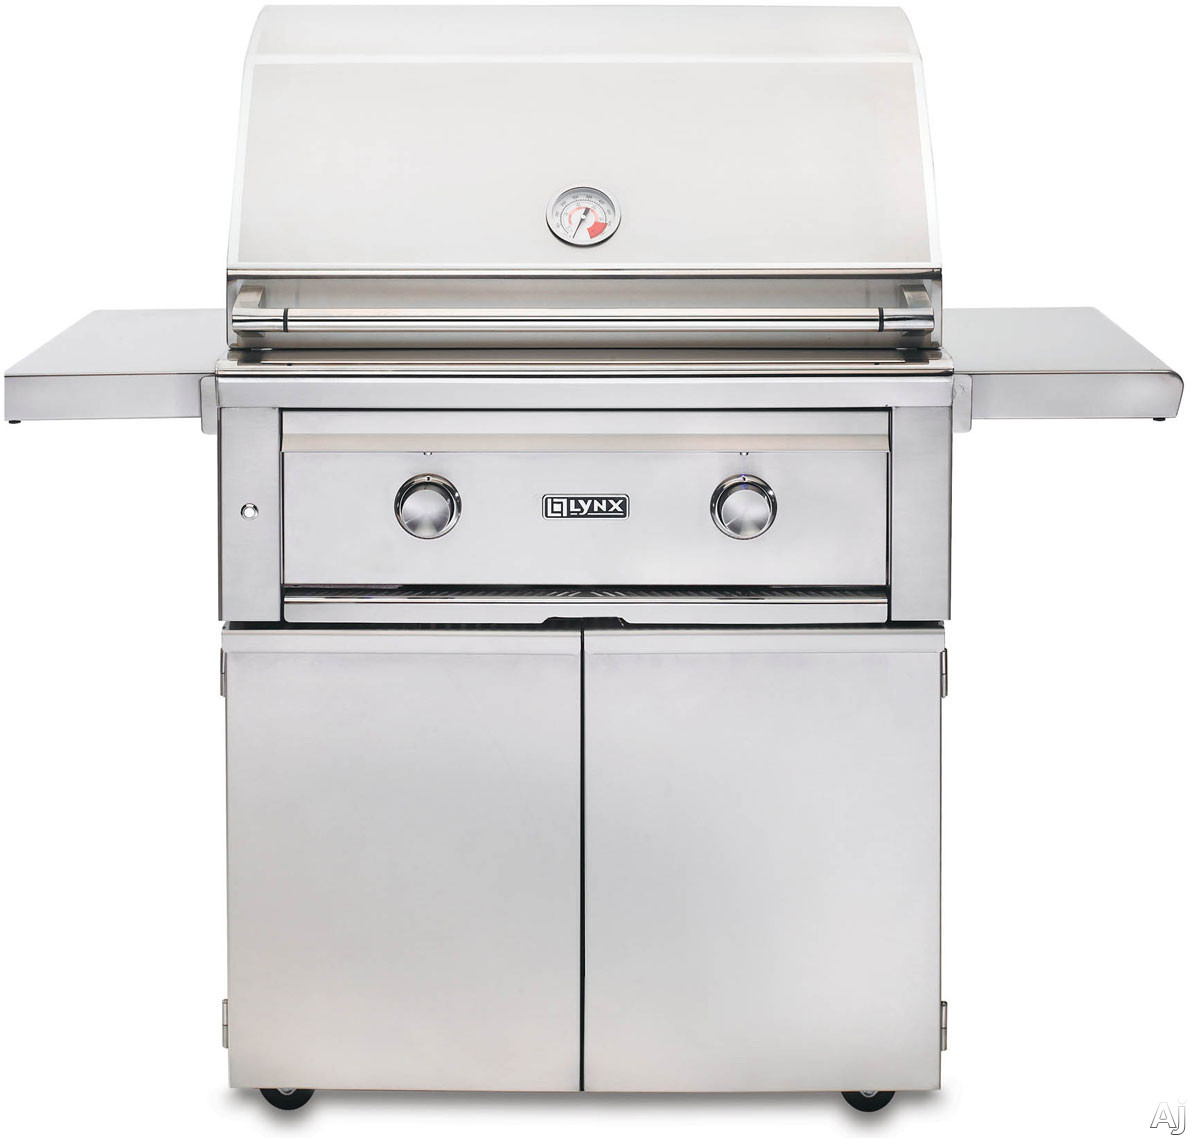 Lynx Sedona Series L500PSLP 30 Inch Built-in Gas Grill with 733 sq. in. Cooking Surface, 46,000 Total BTUs, Stainless Steel Tube Burner, ProSear Burner, Halogen Surface Light and Temperature Gauge: Li